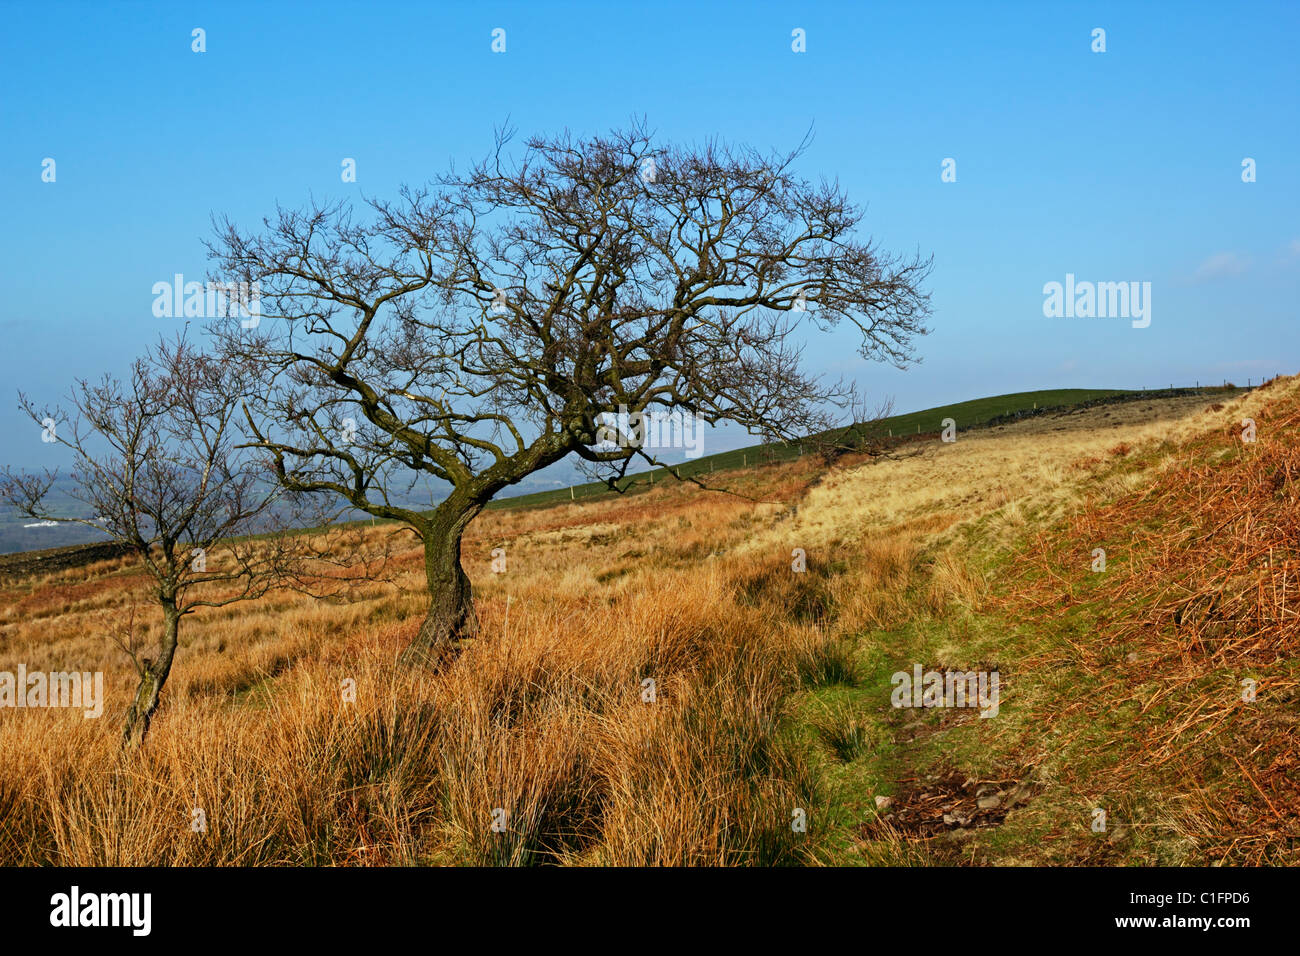 Hawthorn trees in the Forest of Bowland AONB, Lancashire. - Stock Image